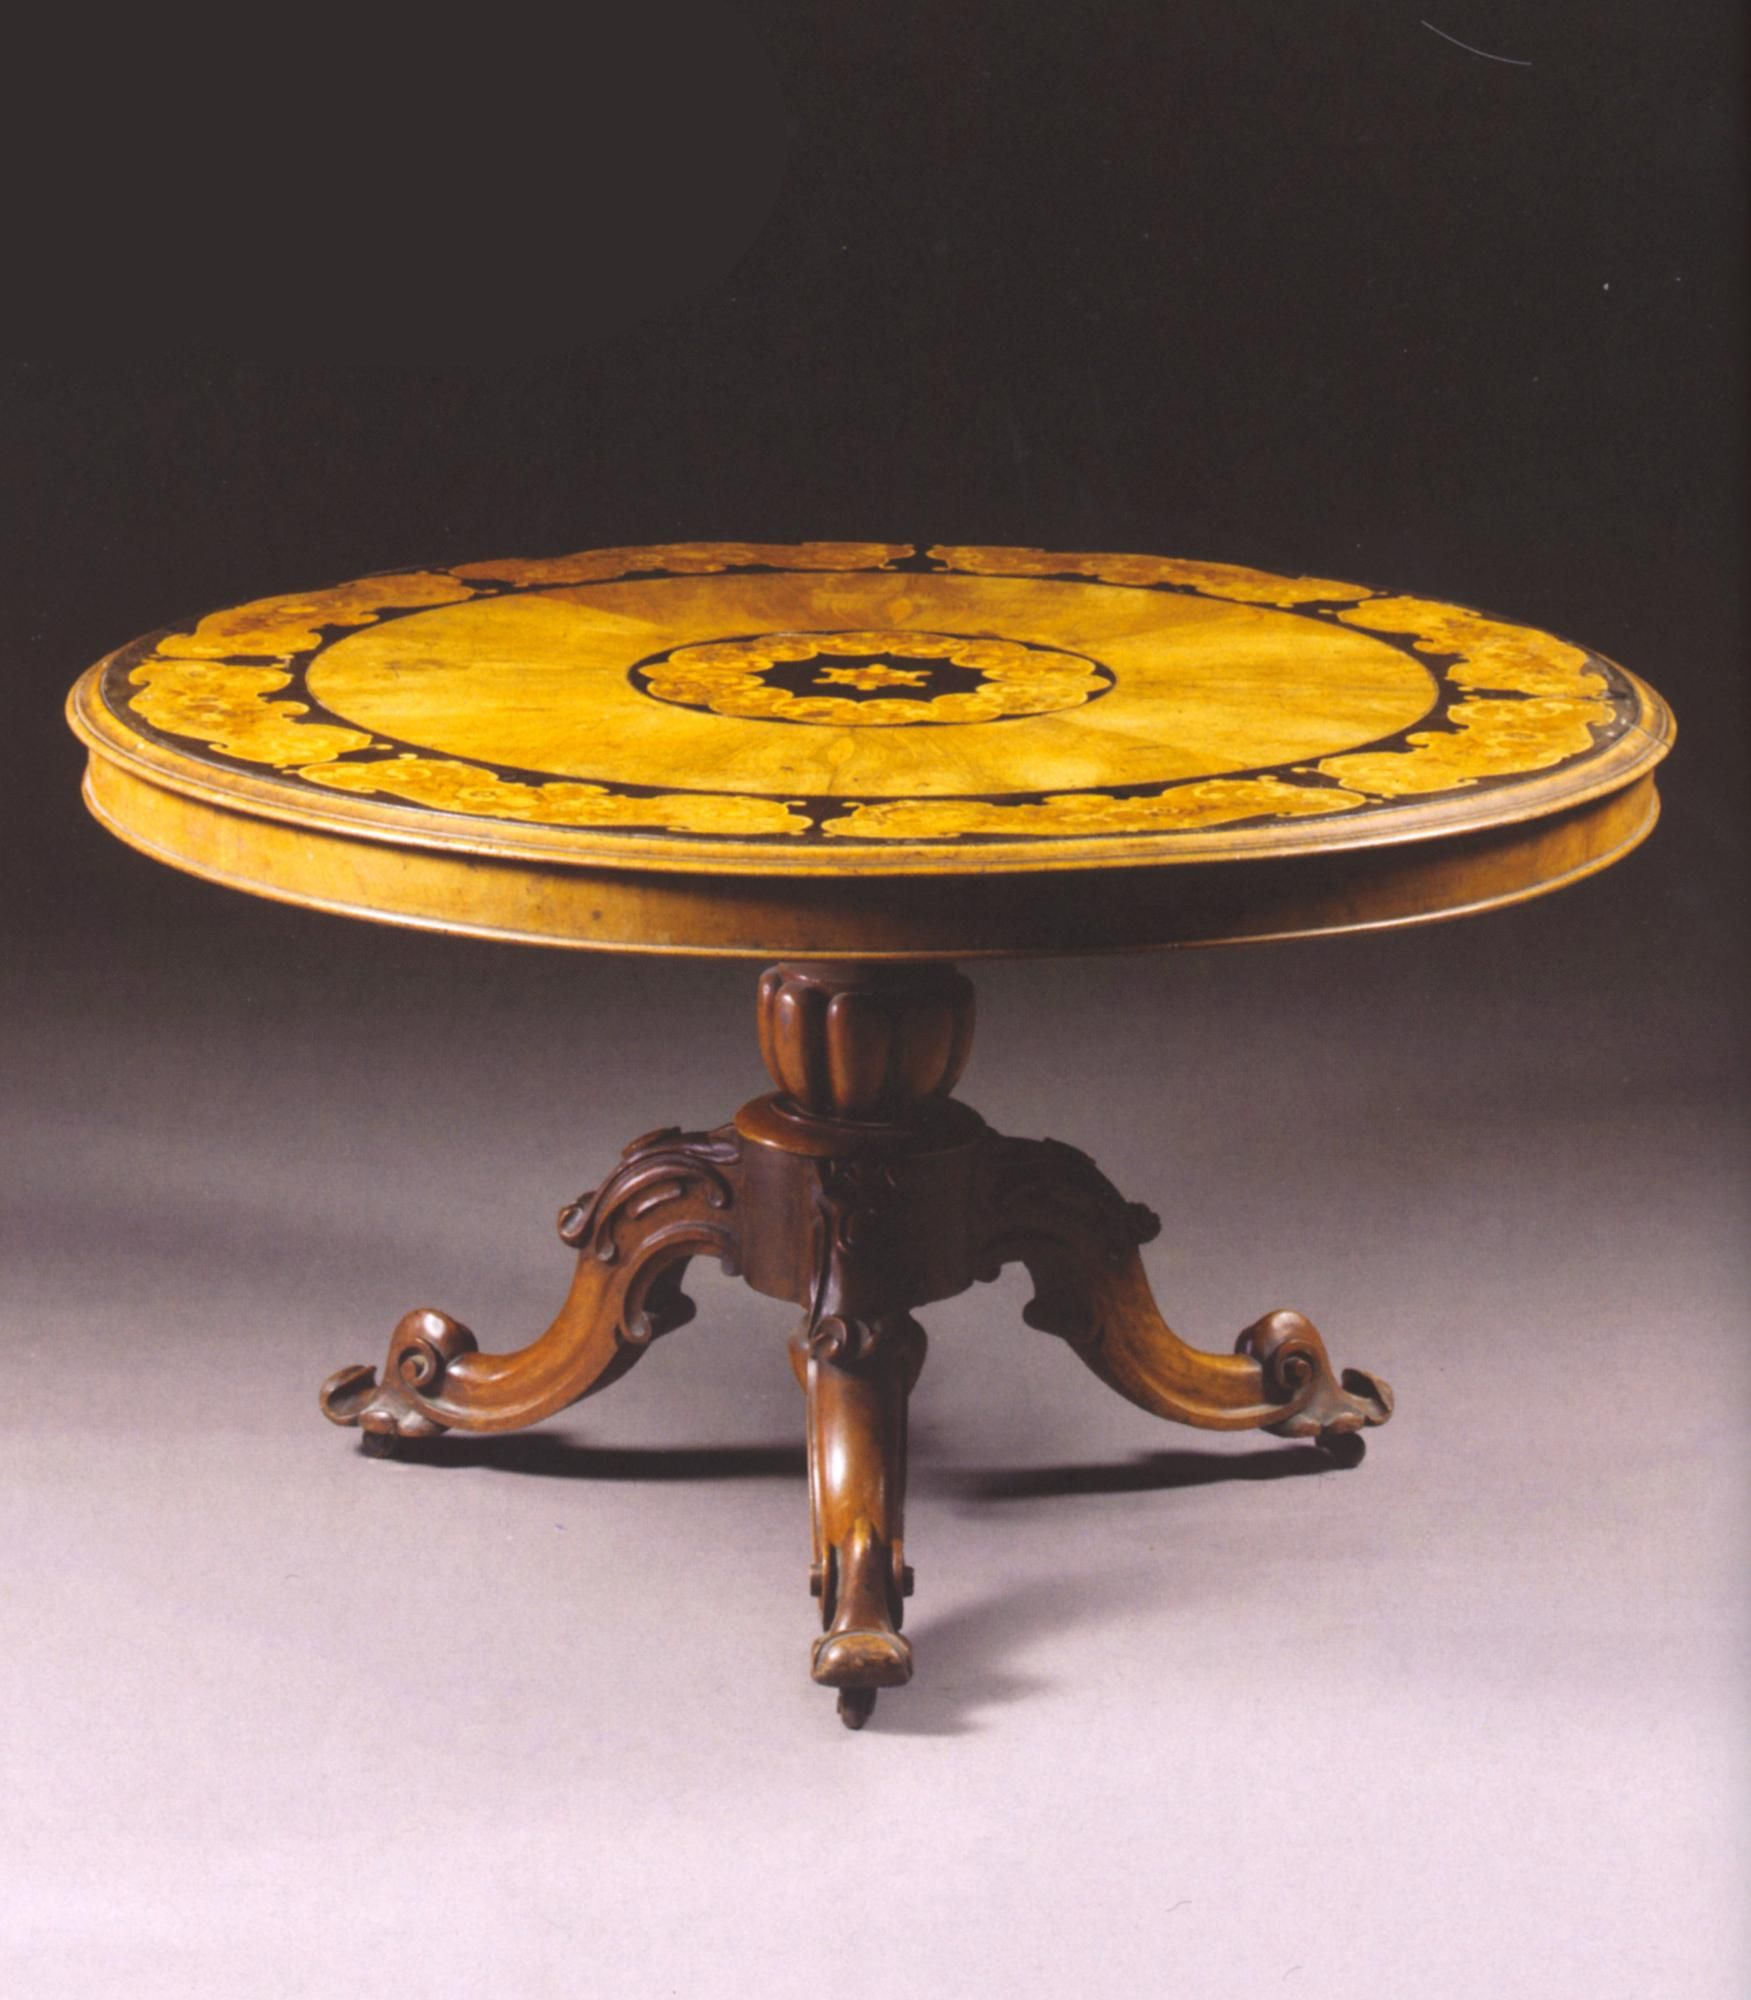 A Victorian Walnut and Marquetry Centre Table  English, Circa 1860.